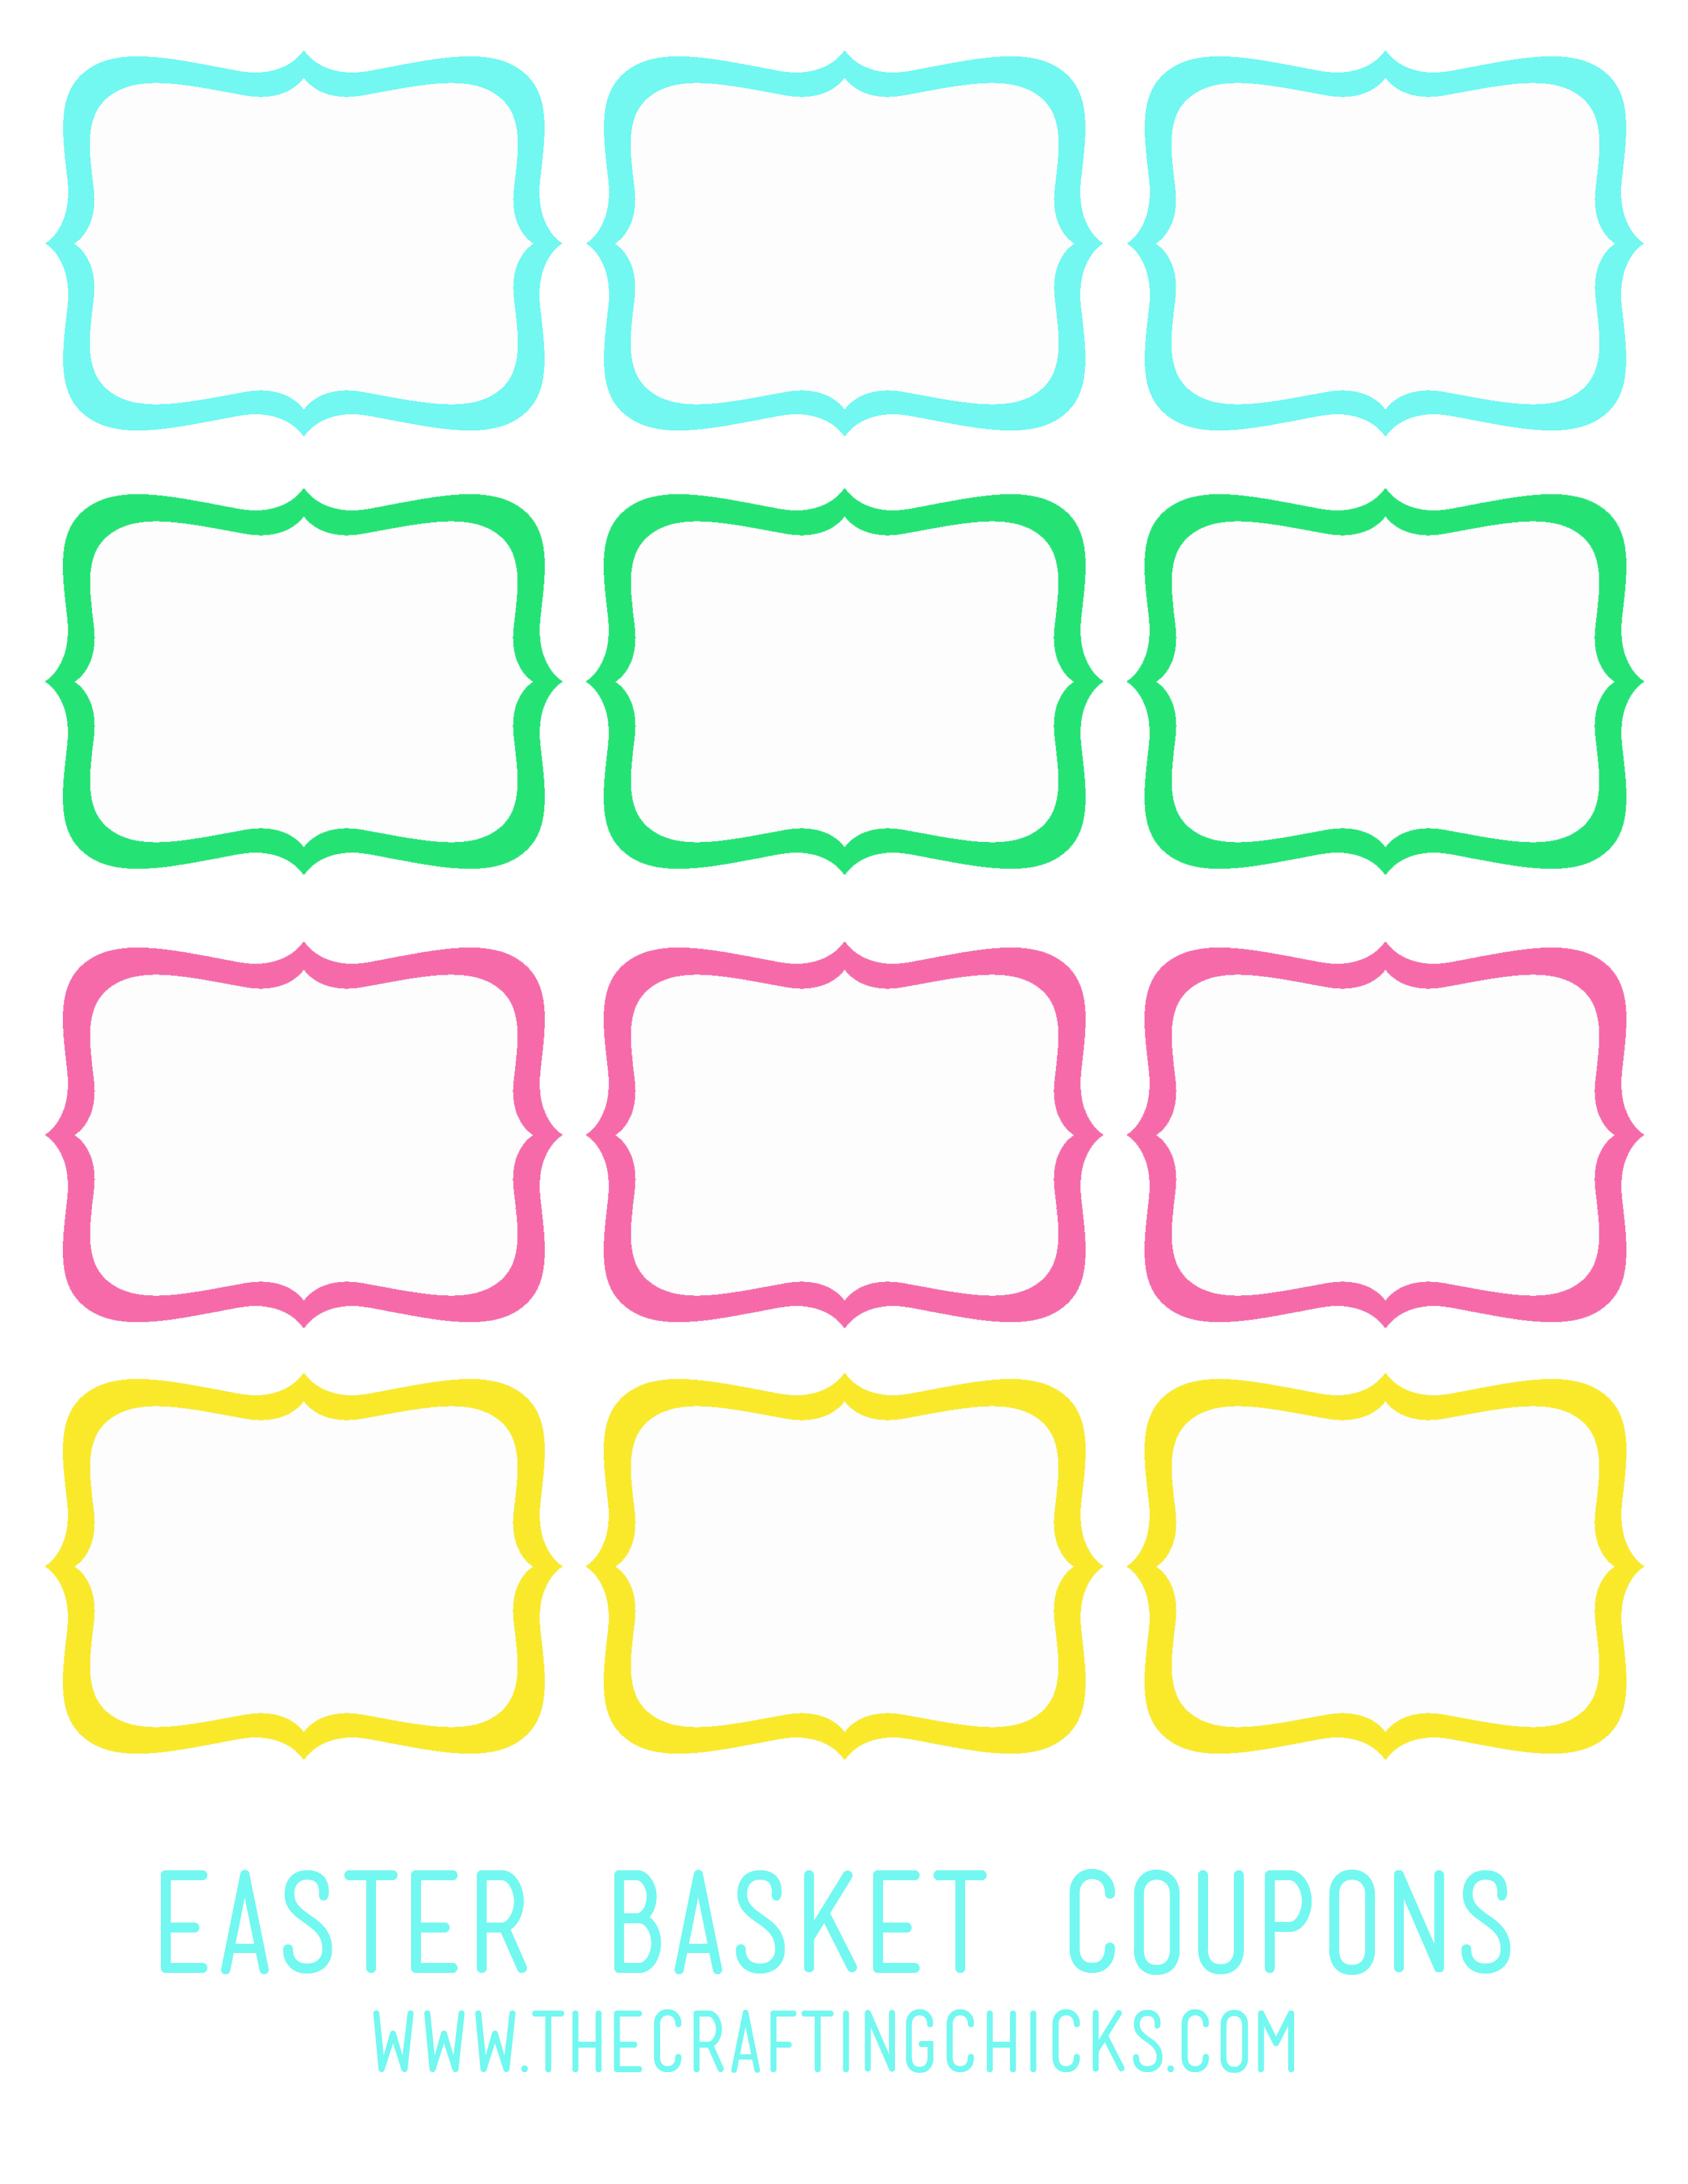 personalized coupon book template - a personalized easter basket